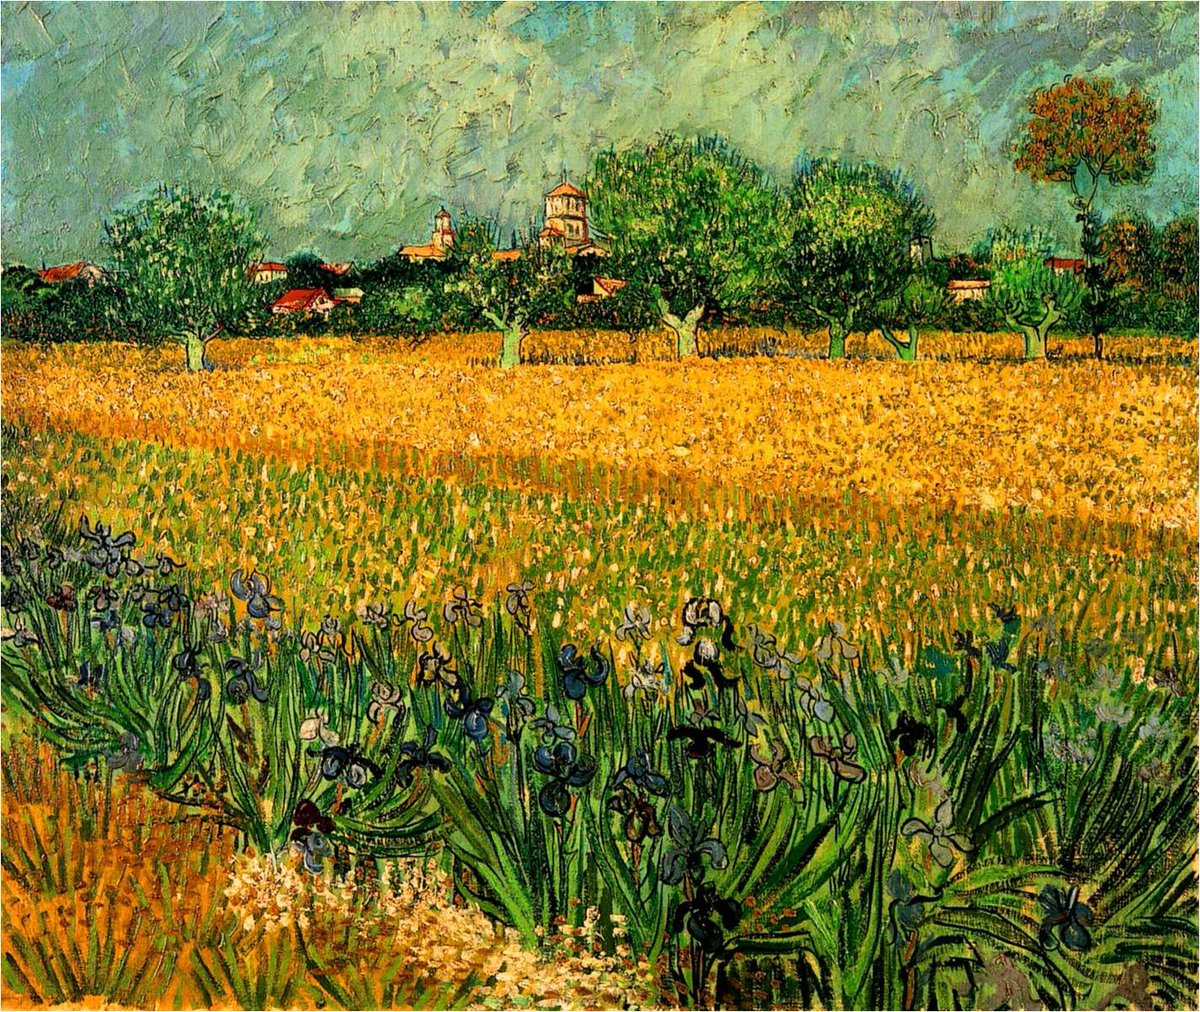 VAN GOGH, &quot;VIEW OF ARLES WITH IRISES IN THE FOREGROUND&quot; 1888 #vangogh #art #arttwit #twitart #iloveart #Arles #artlover <br>http://pic.twitter.com/pDuizplGdX